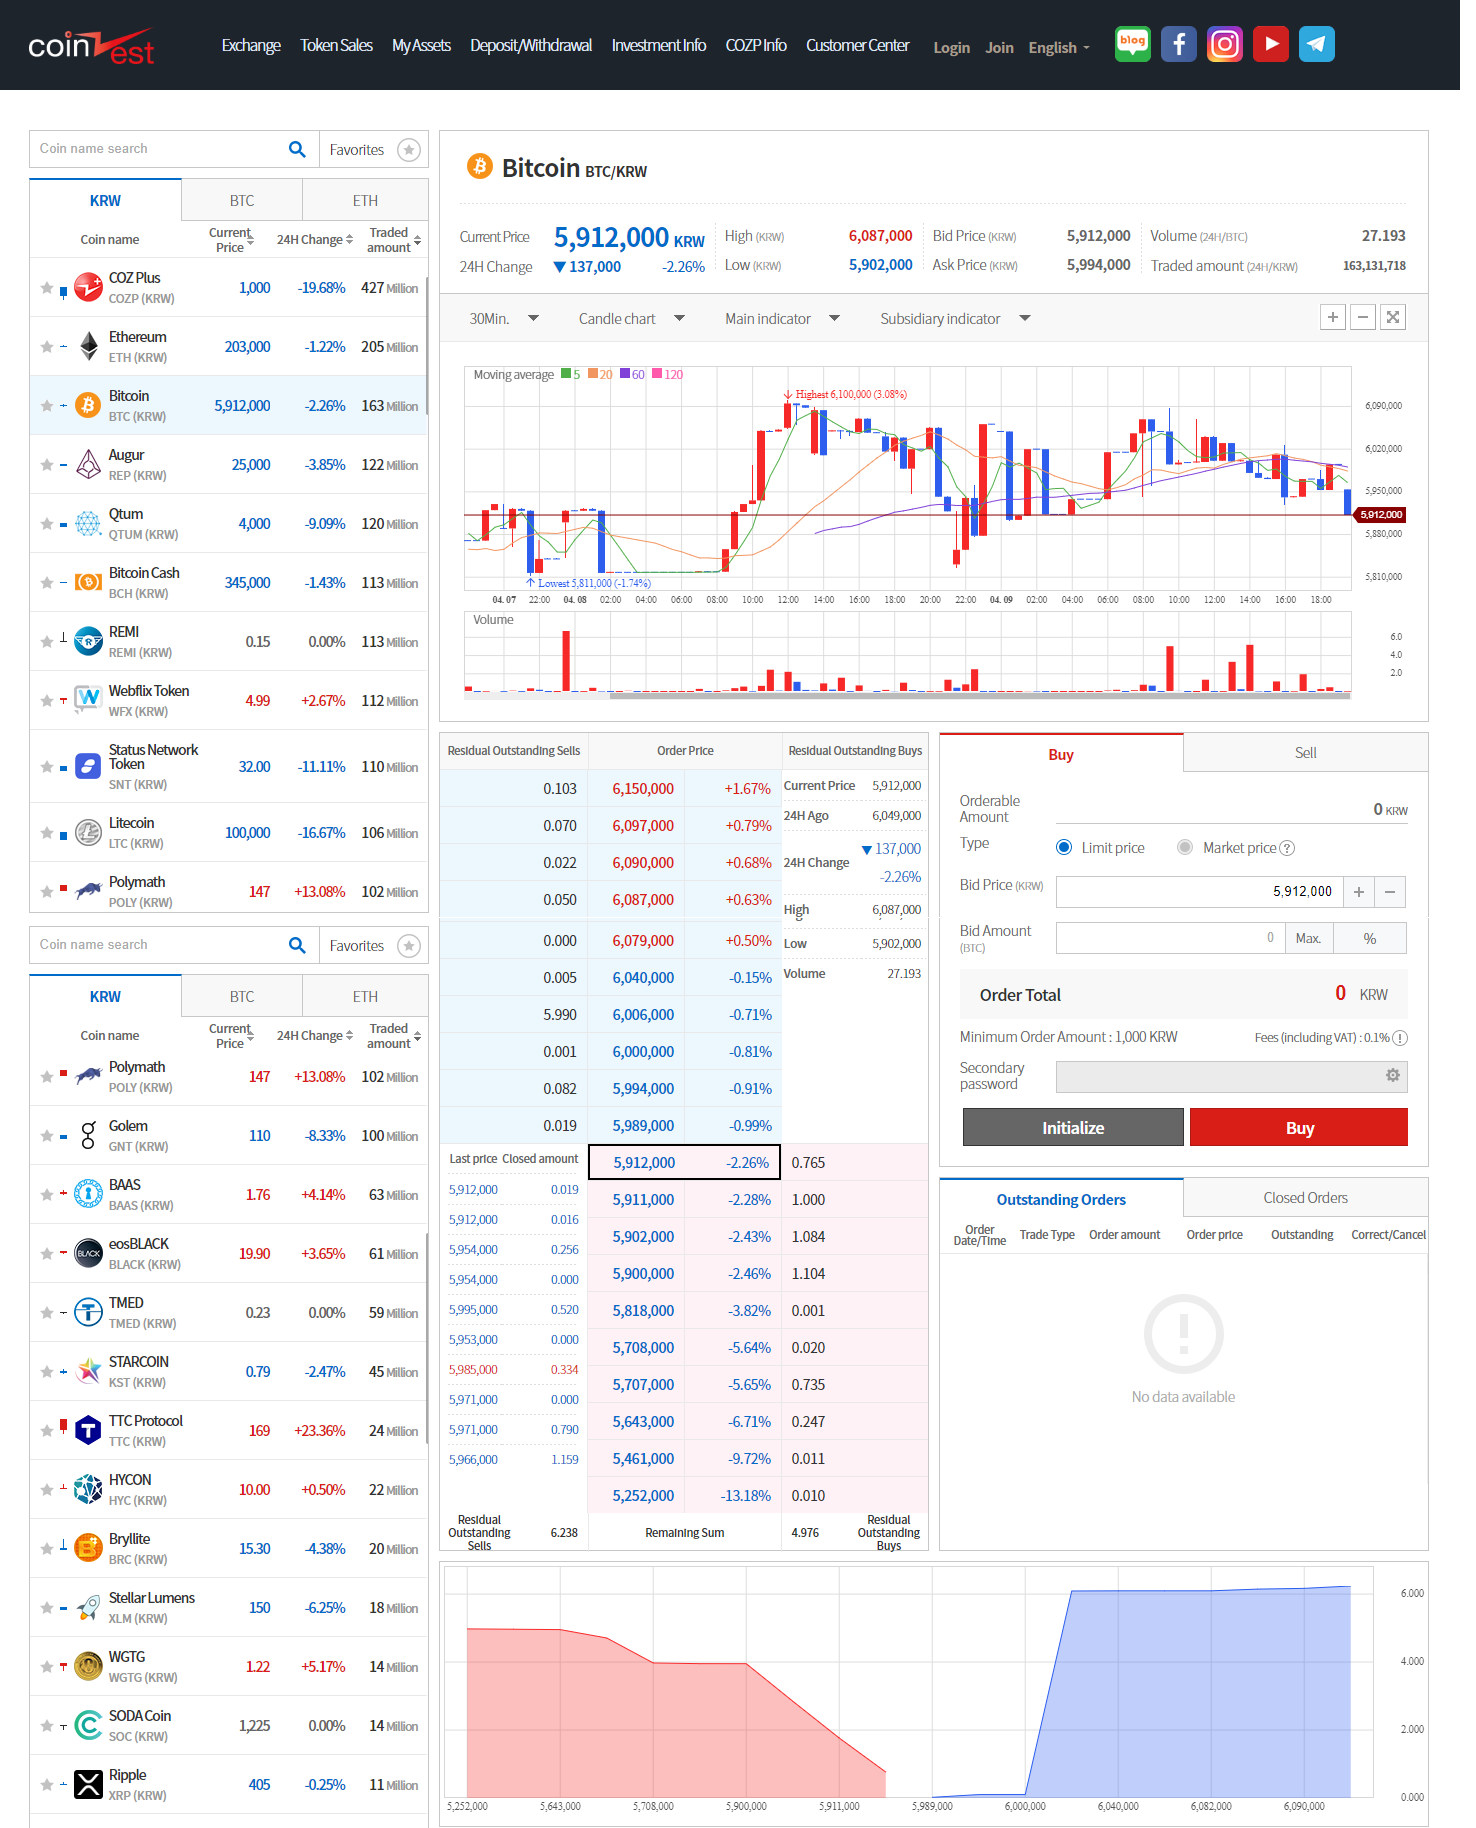 CoinZest Trading View